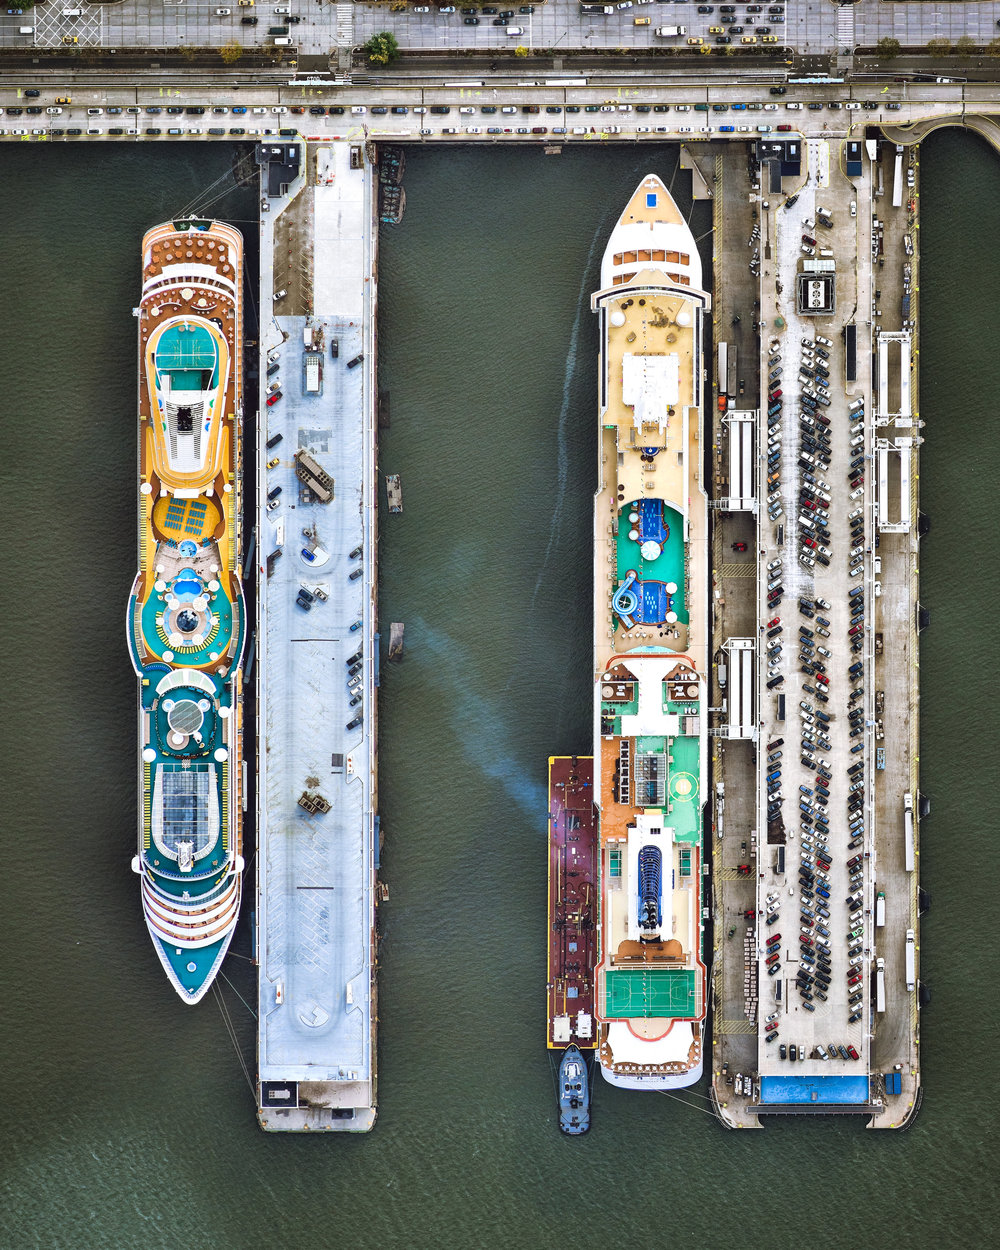 """Piers 88 and 90 make up the Manhattan Cruise Terminal, a gateway for ocean-going passenger ships in the Hell's Kitchen neighborhood of New York City. Both piers are 1,100 feet (340 m) long and 400 feet (120 m) apart, and together they handle more than 1 million passengers per year.  40°46'06.9""""N, 73°59'50.5""""W  Source imagery: Nearmap"""